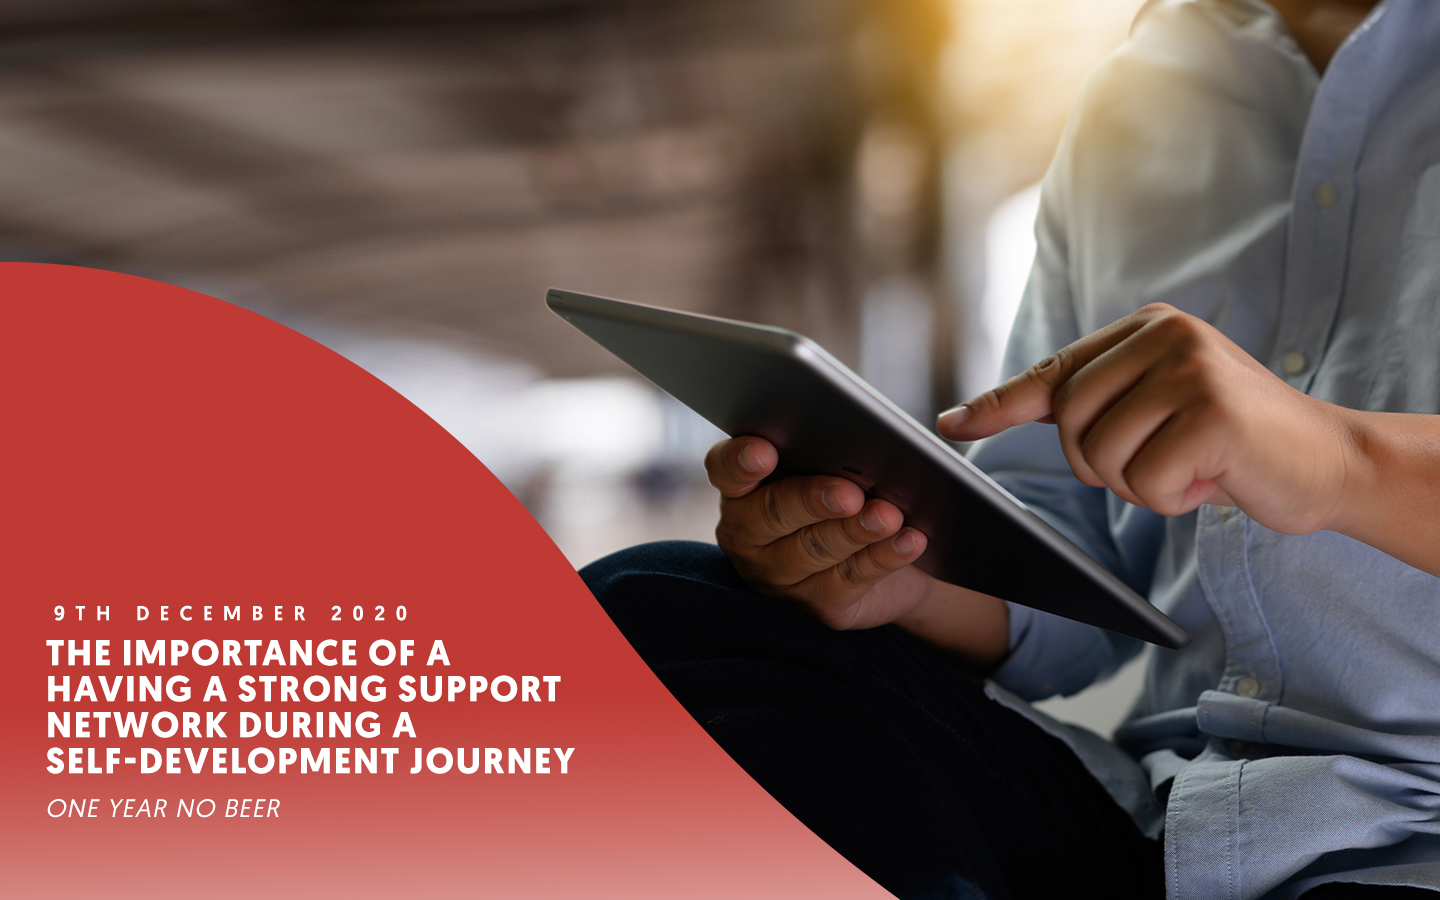 The importance of a having a strong support network during a self-development journey